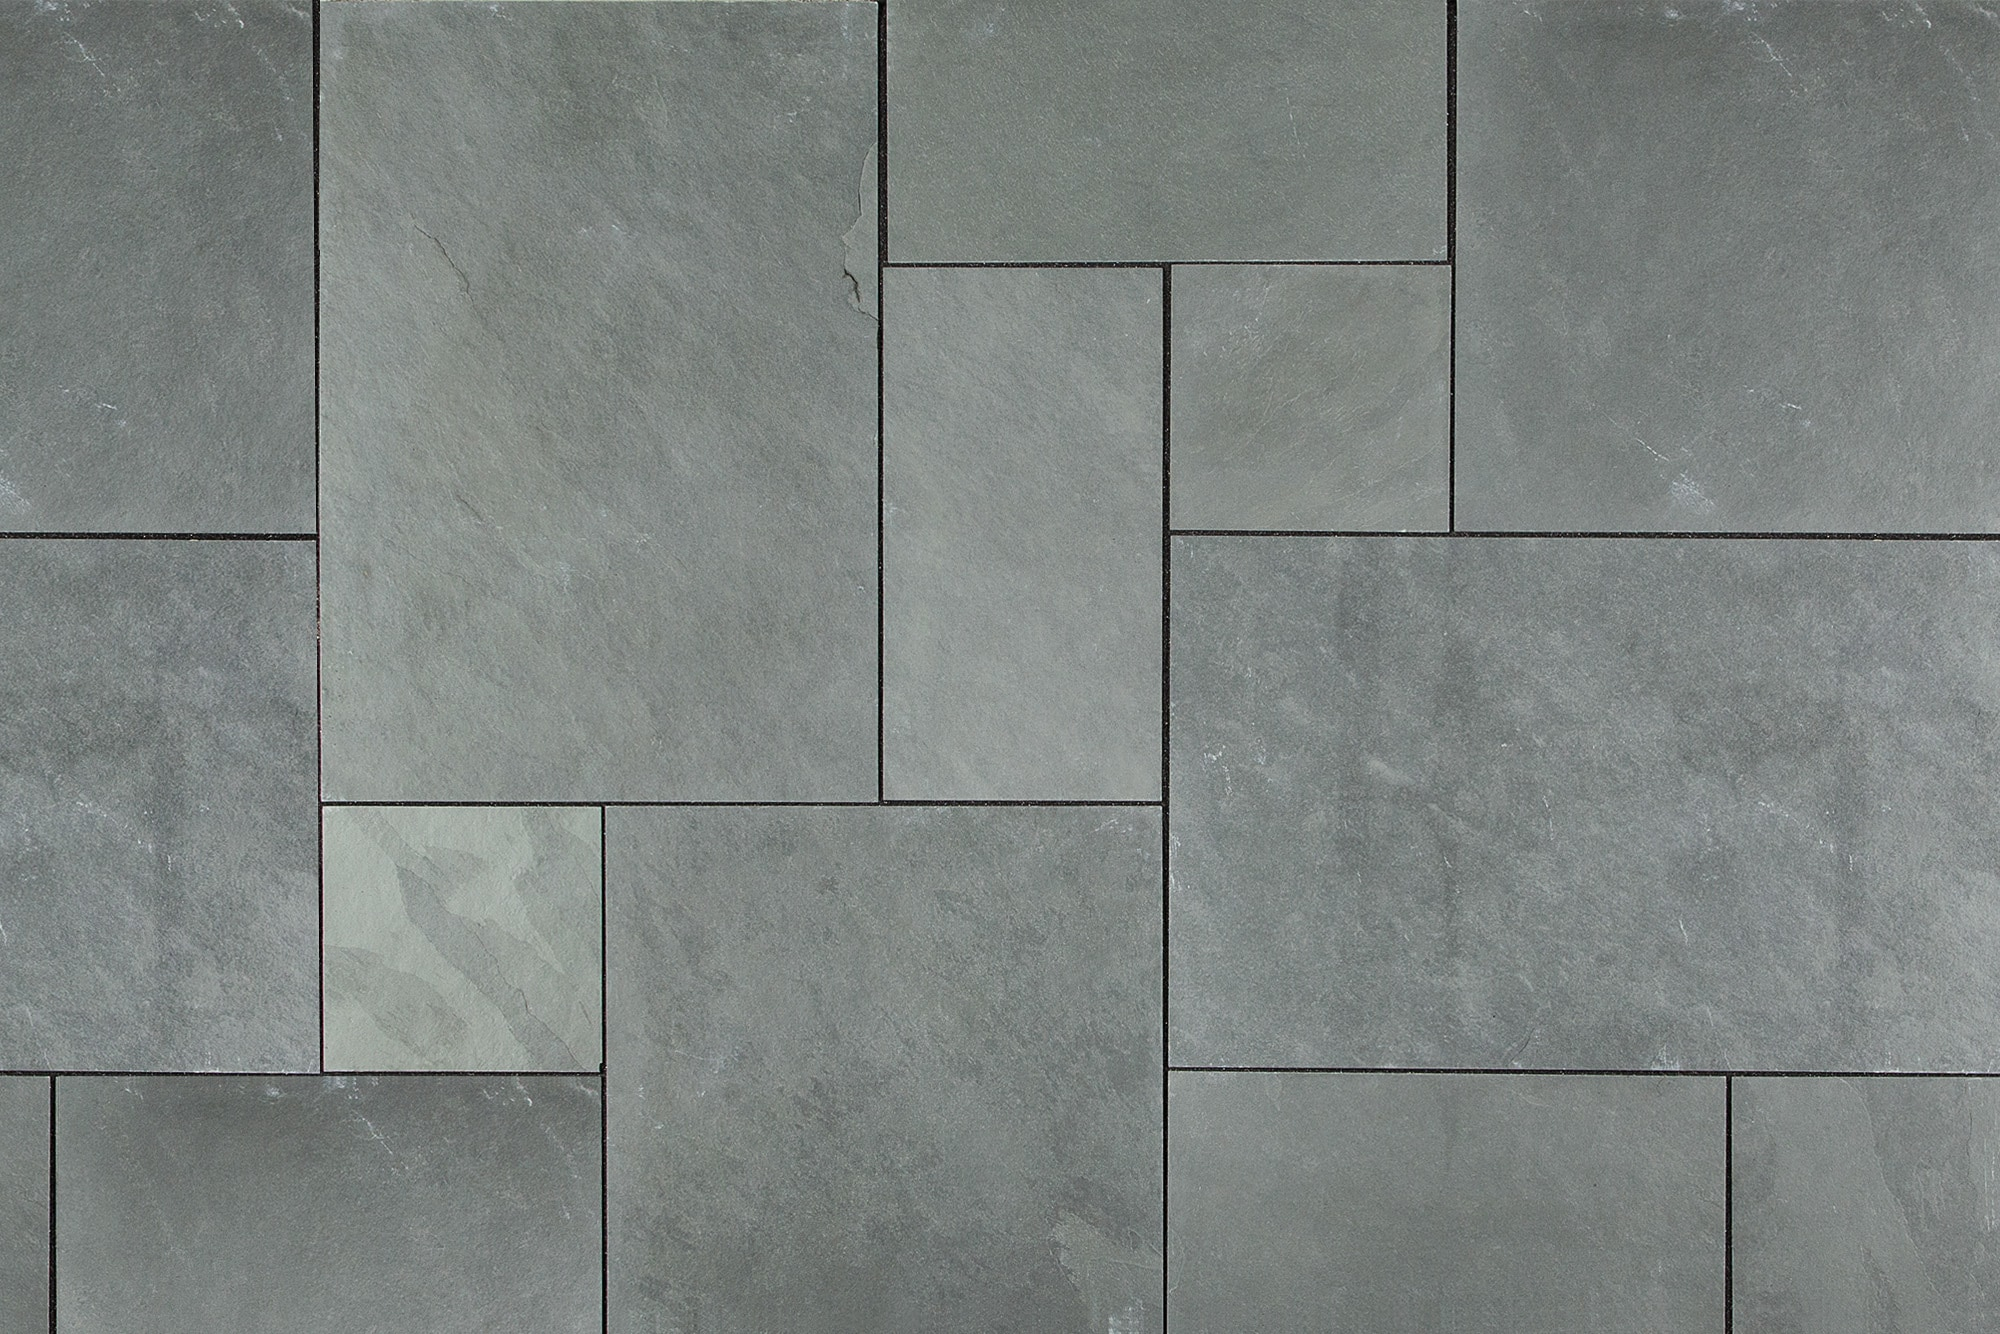 Montauk Black Slate Tile Home Depot Home Improvement